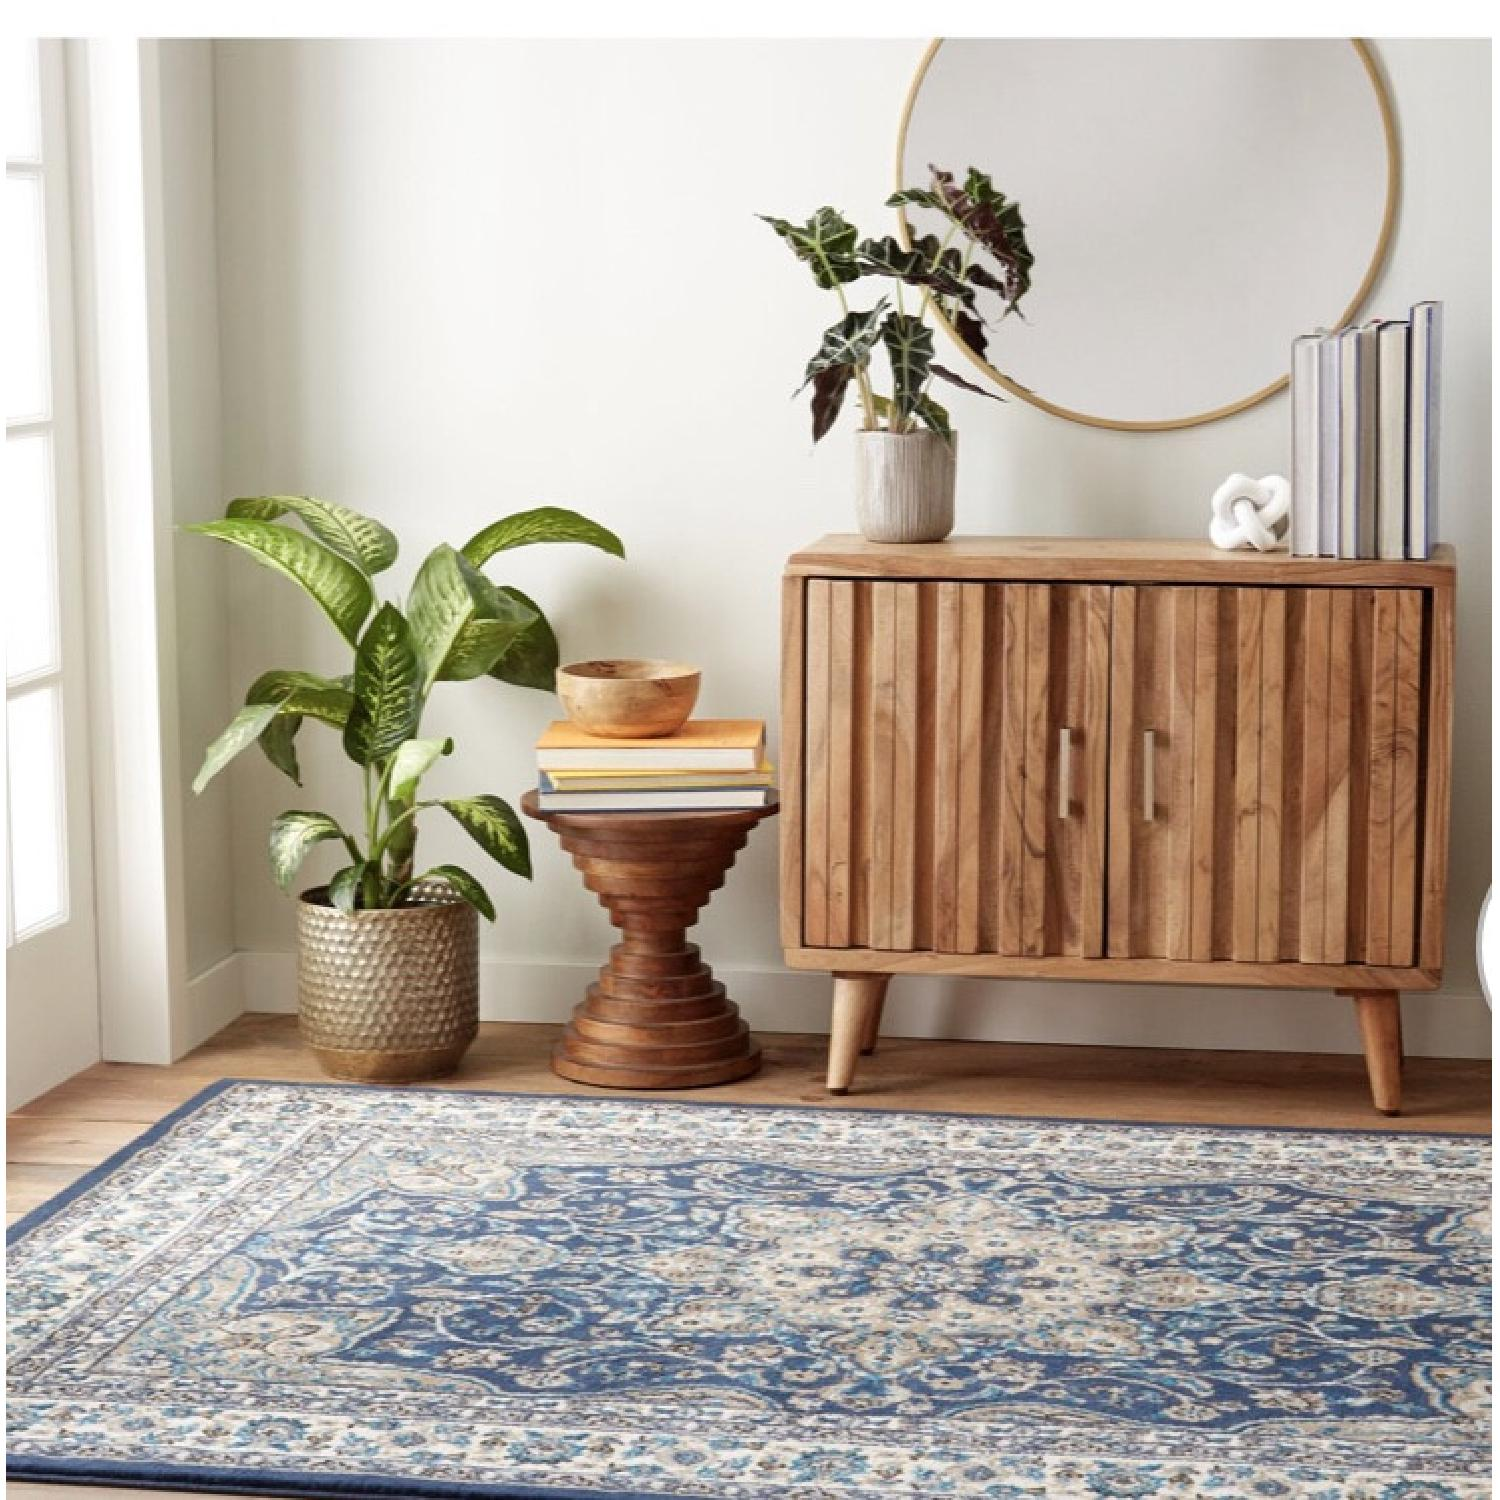 Charlton Home Arend Blue/Ivory Area Rug - image-1